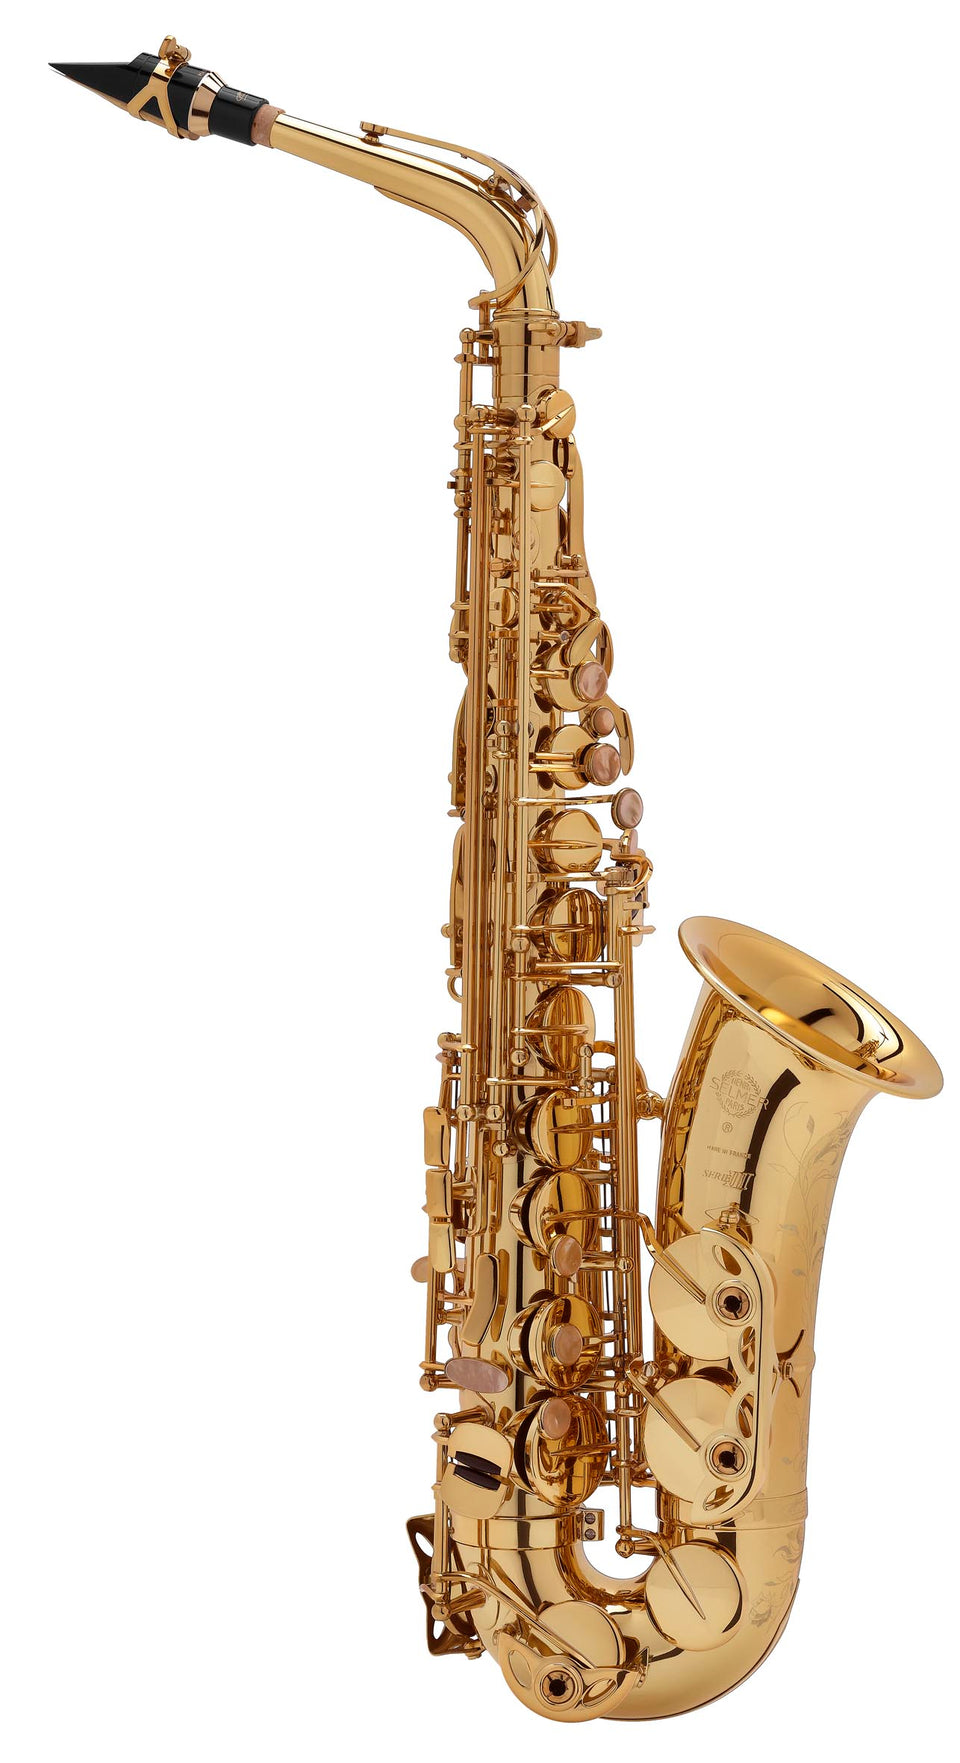 Selmer Super Action 80 Series III Alto Saxophone